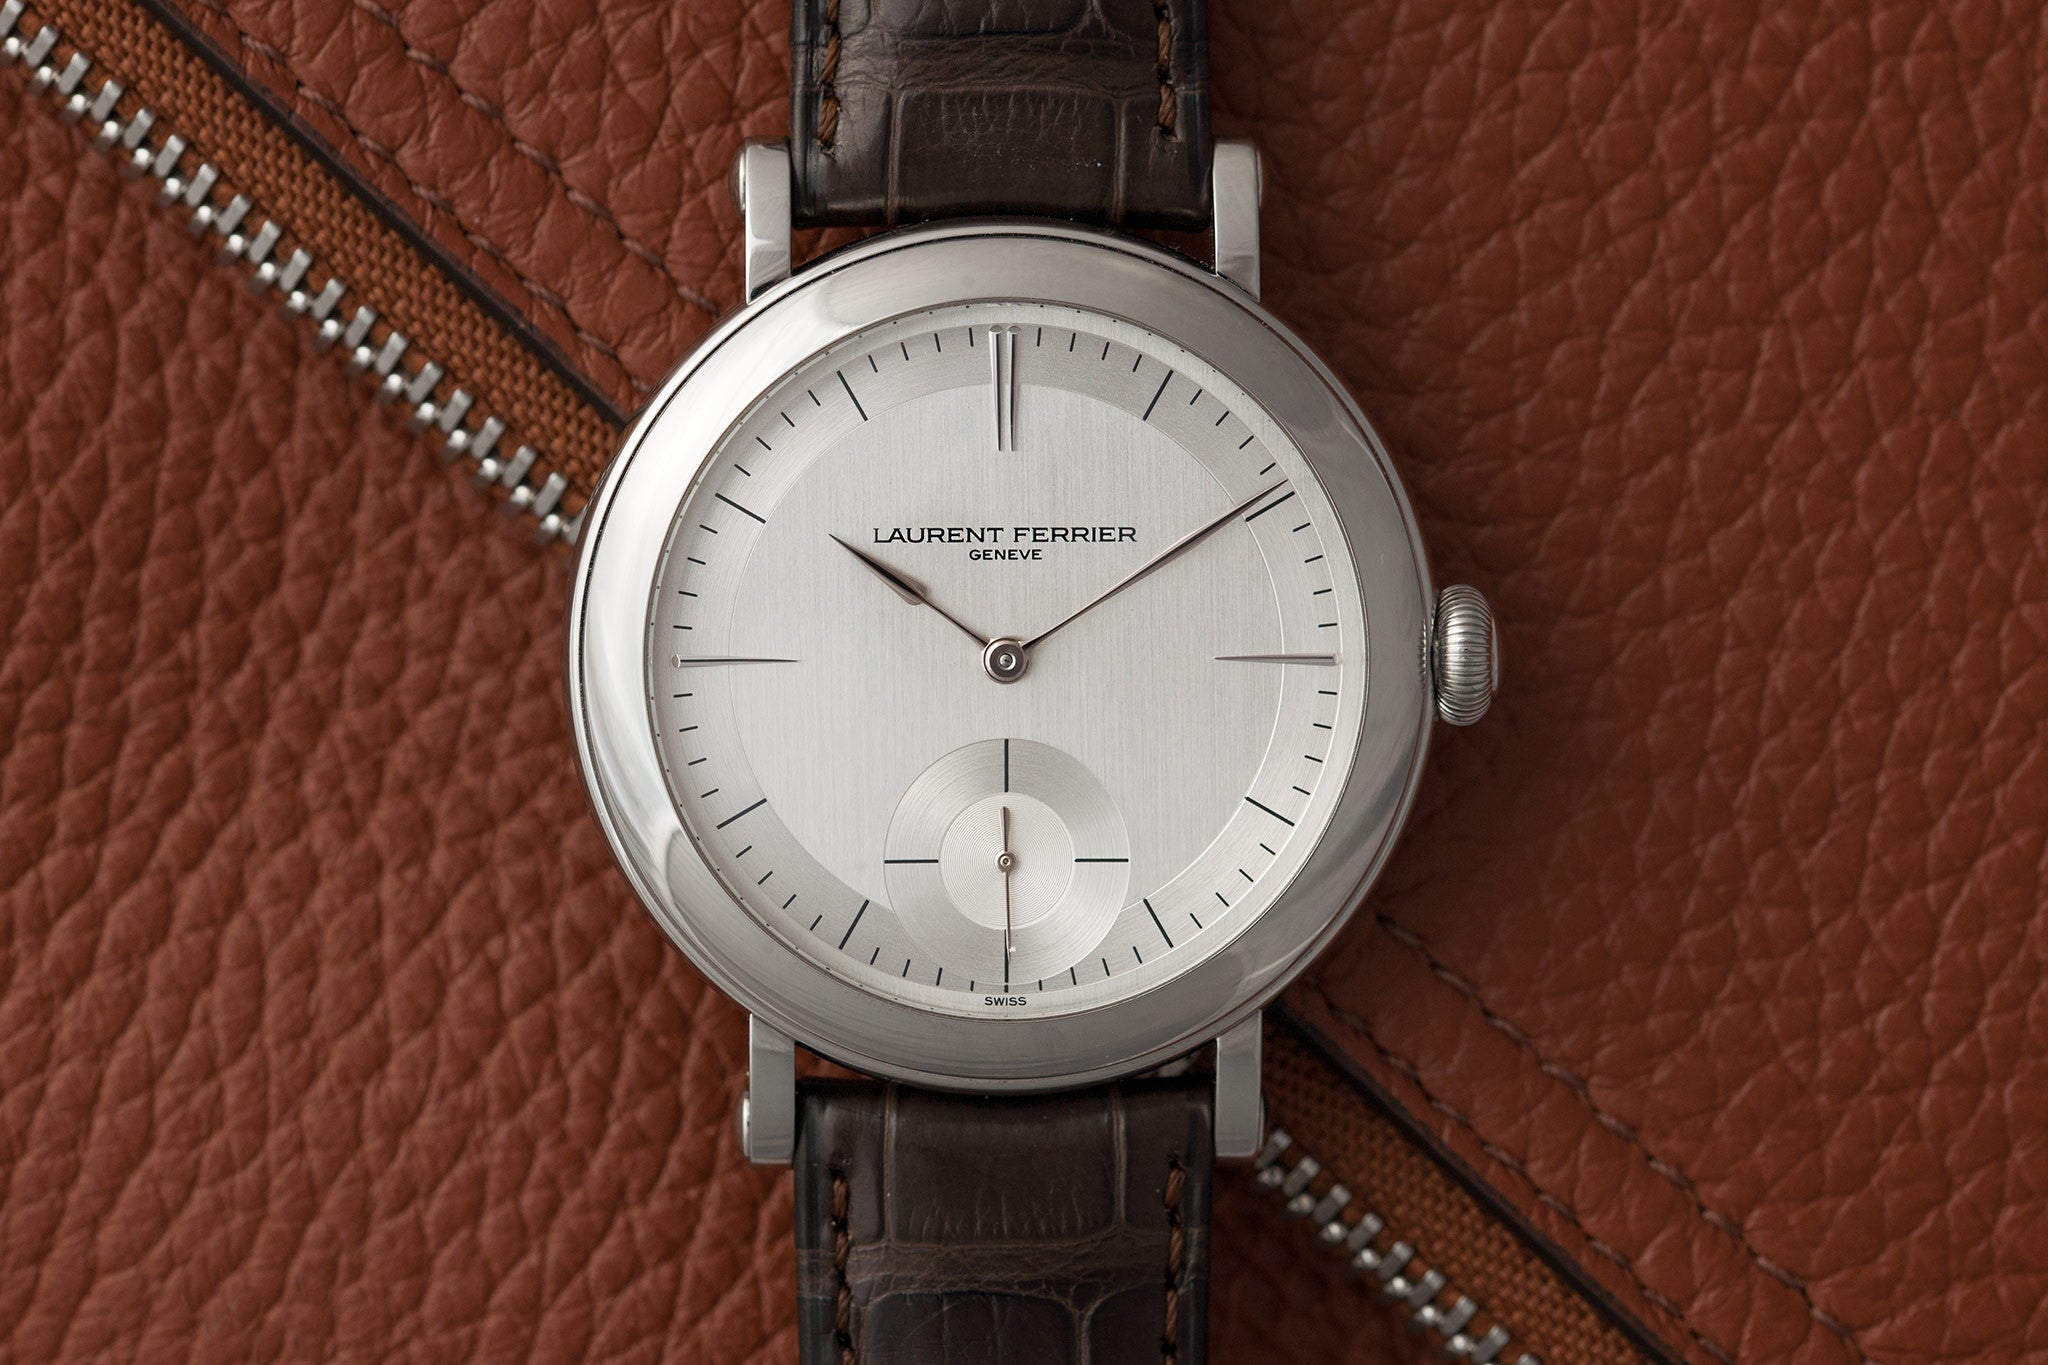 Laurent Ferrier Montre École watch at A Collected Man - approved seller of independent watchmakers